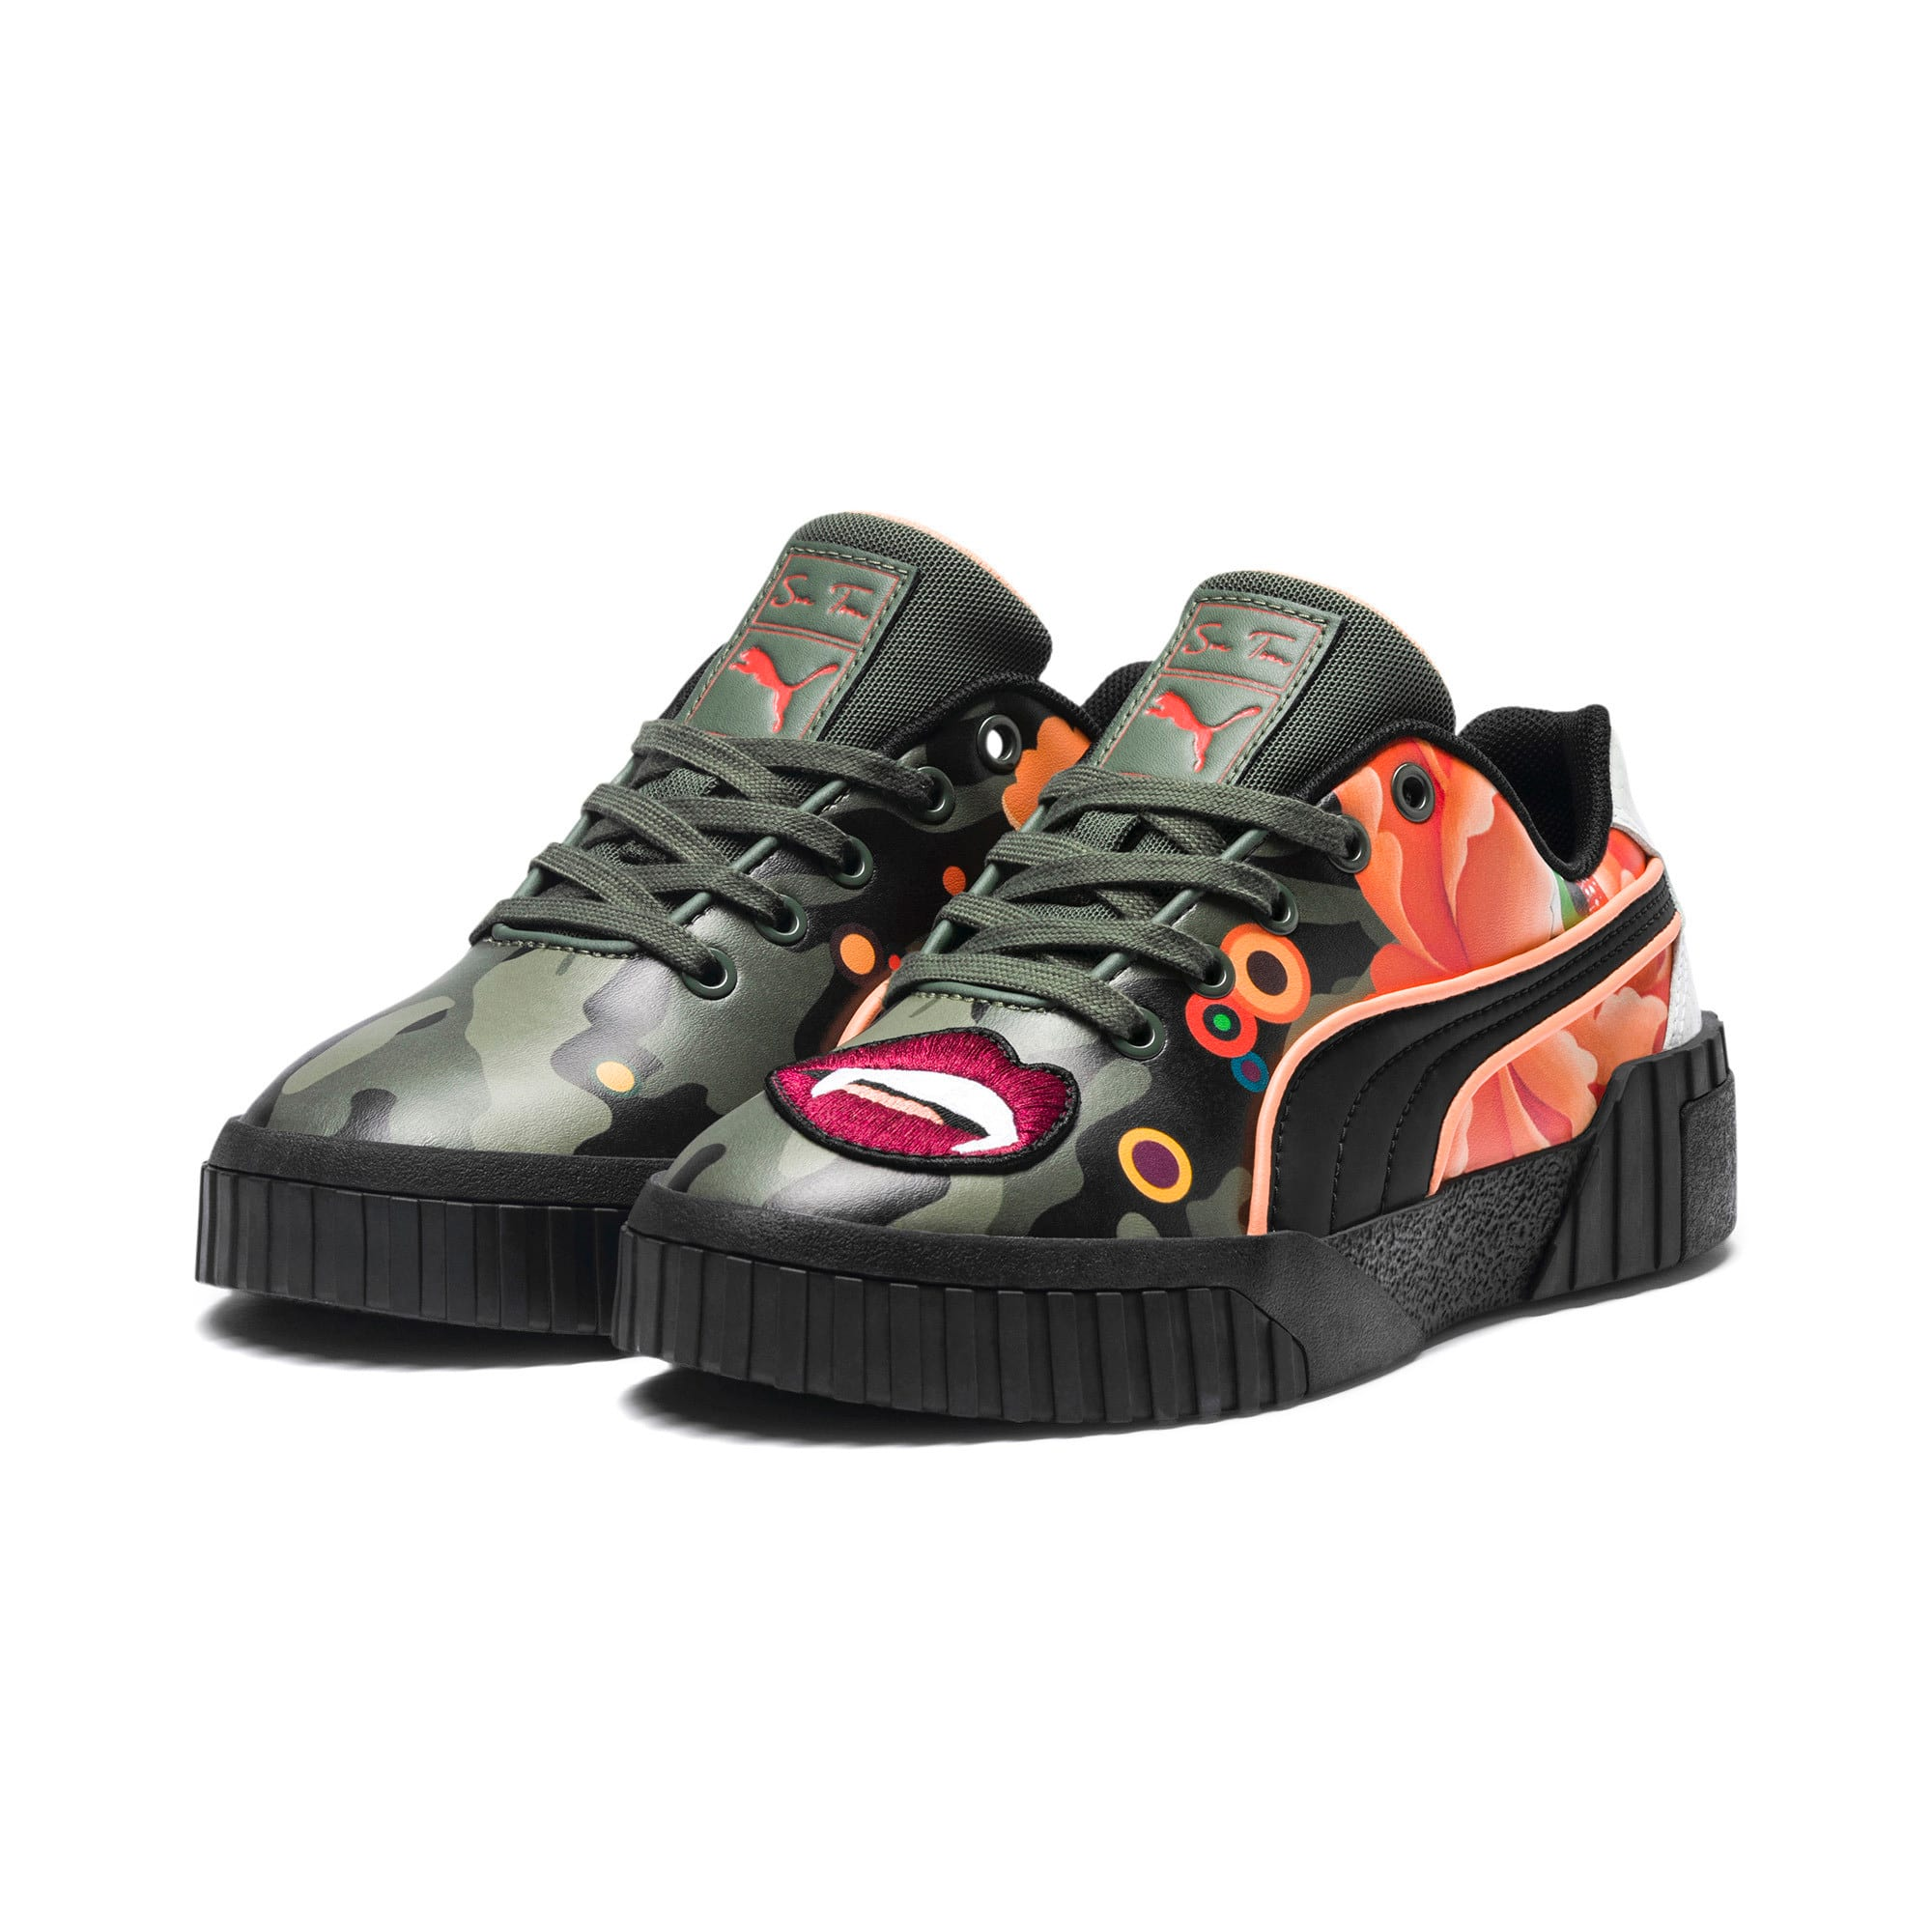 Thumbnail 3 of PUMA x SUE TSAI Cali 'Peonies Camo' sneakers voor dames, Puma Black-Puma Black, medium